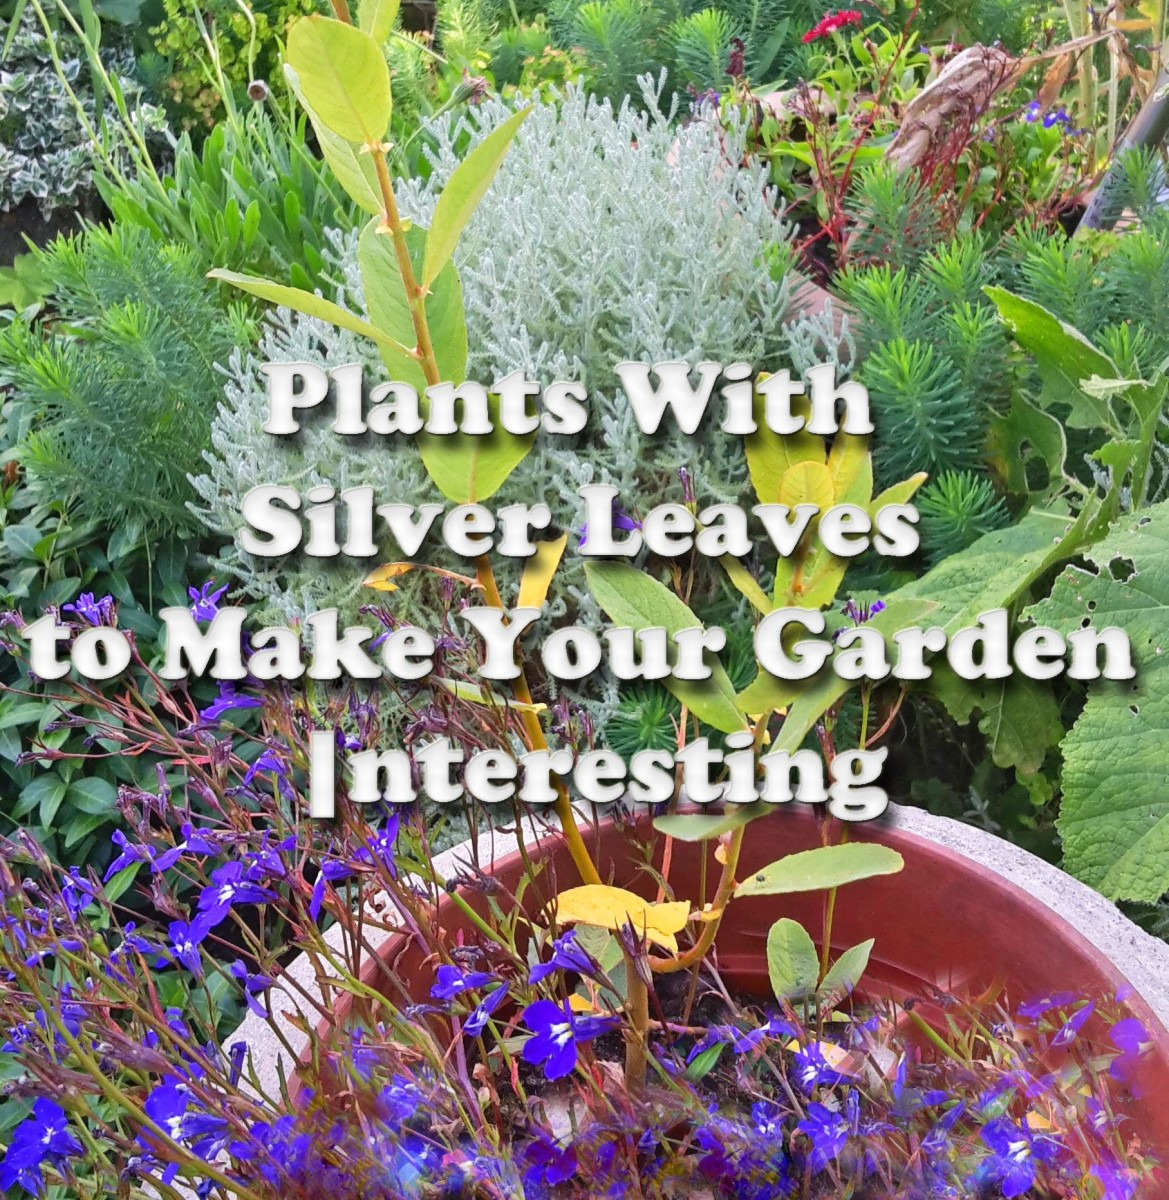 5 Plants With Silver Leaves to Make Your Garden Interesting